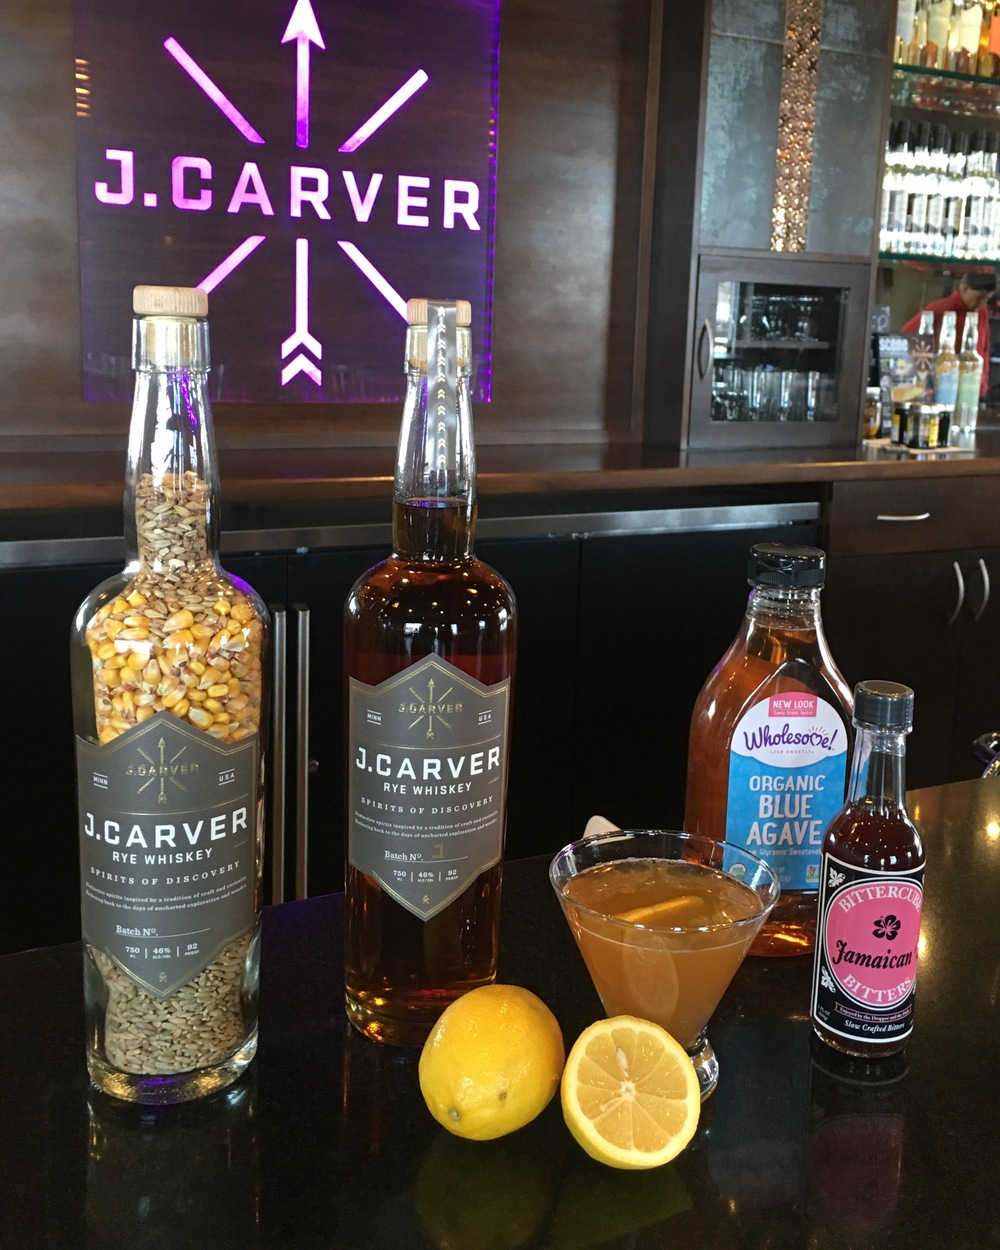 J. Carver Wise Guy Cocktail